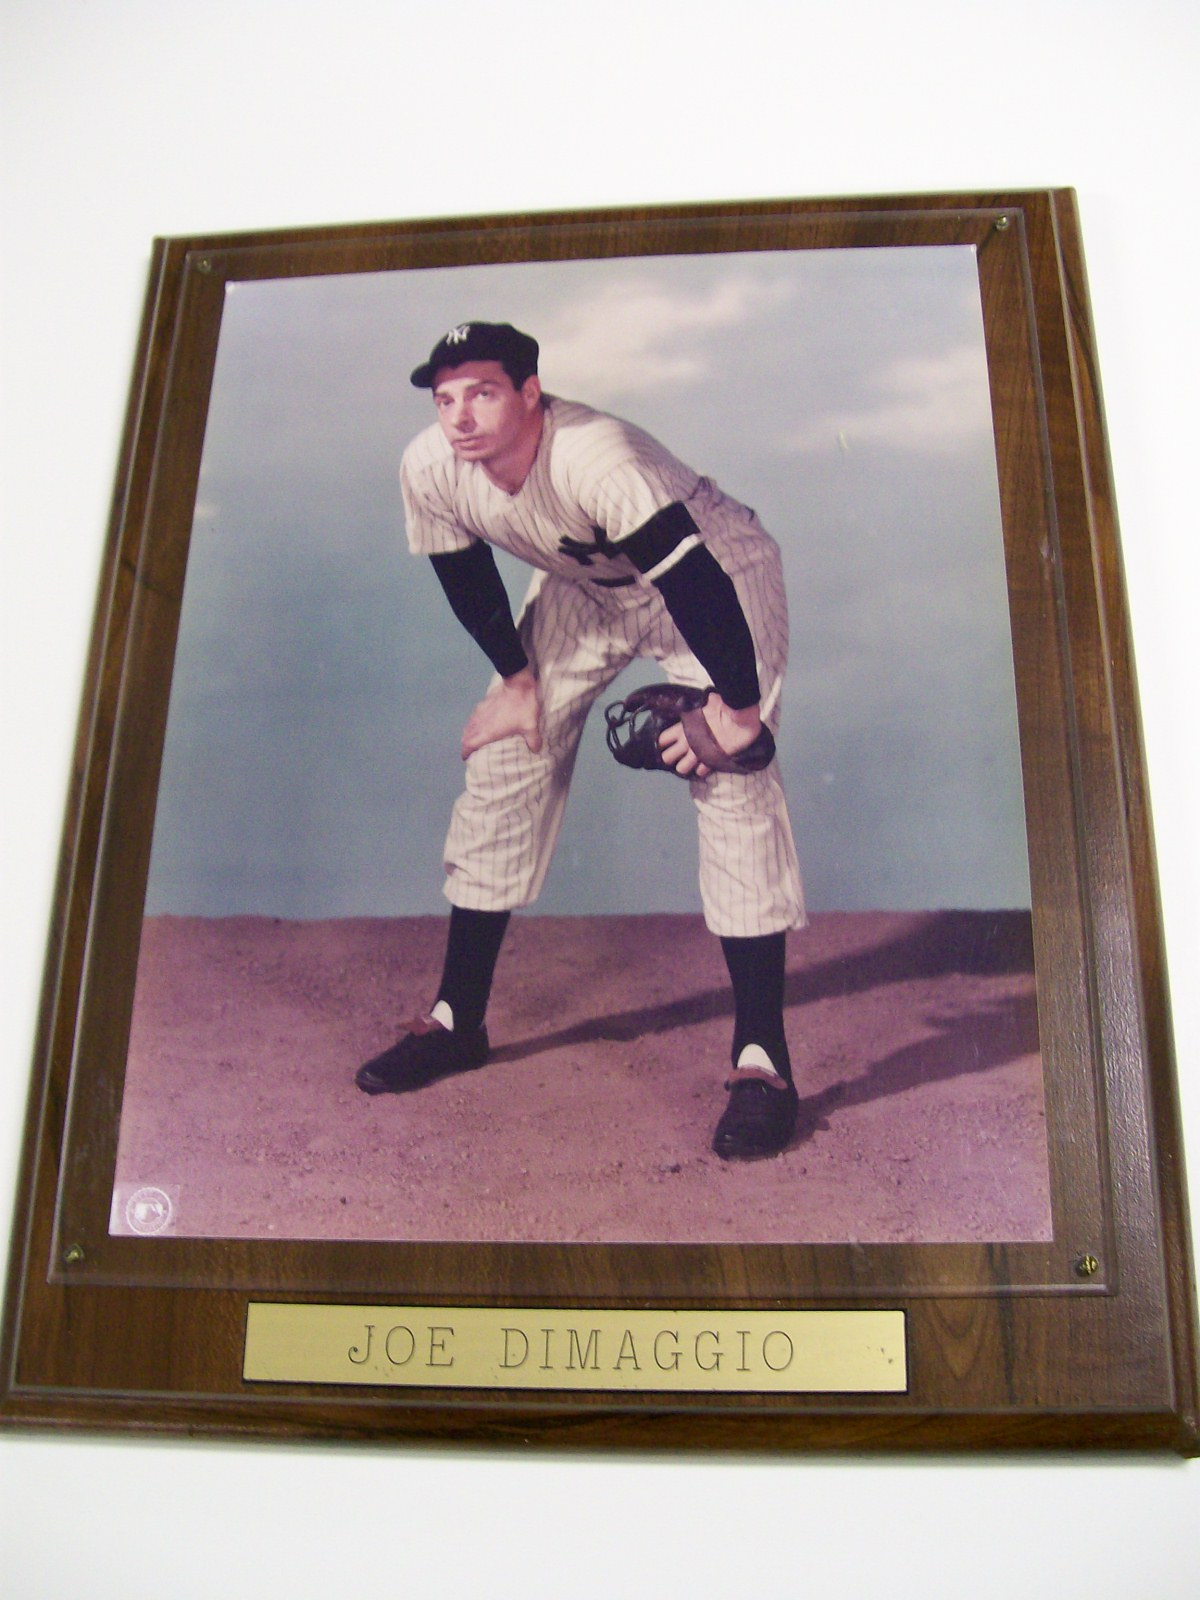 REAL PHOTO OF JOE DIMAGGIO IN YANKEE UNIFORM